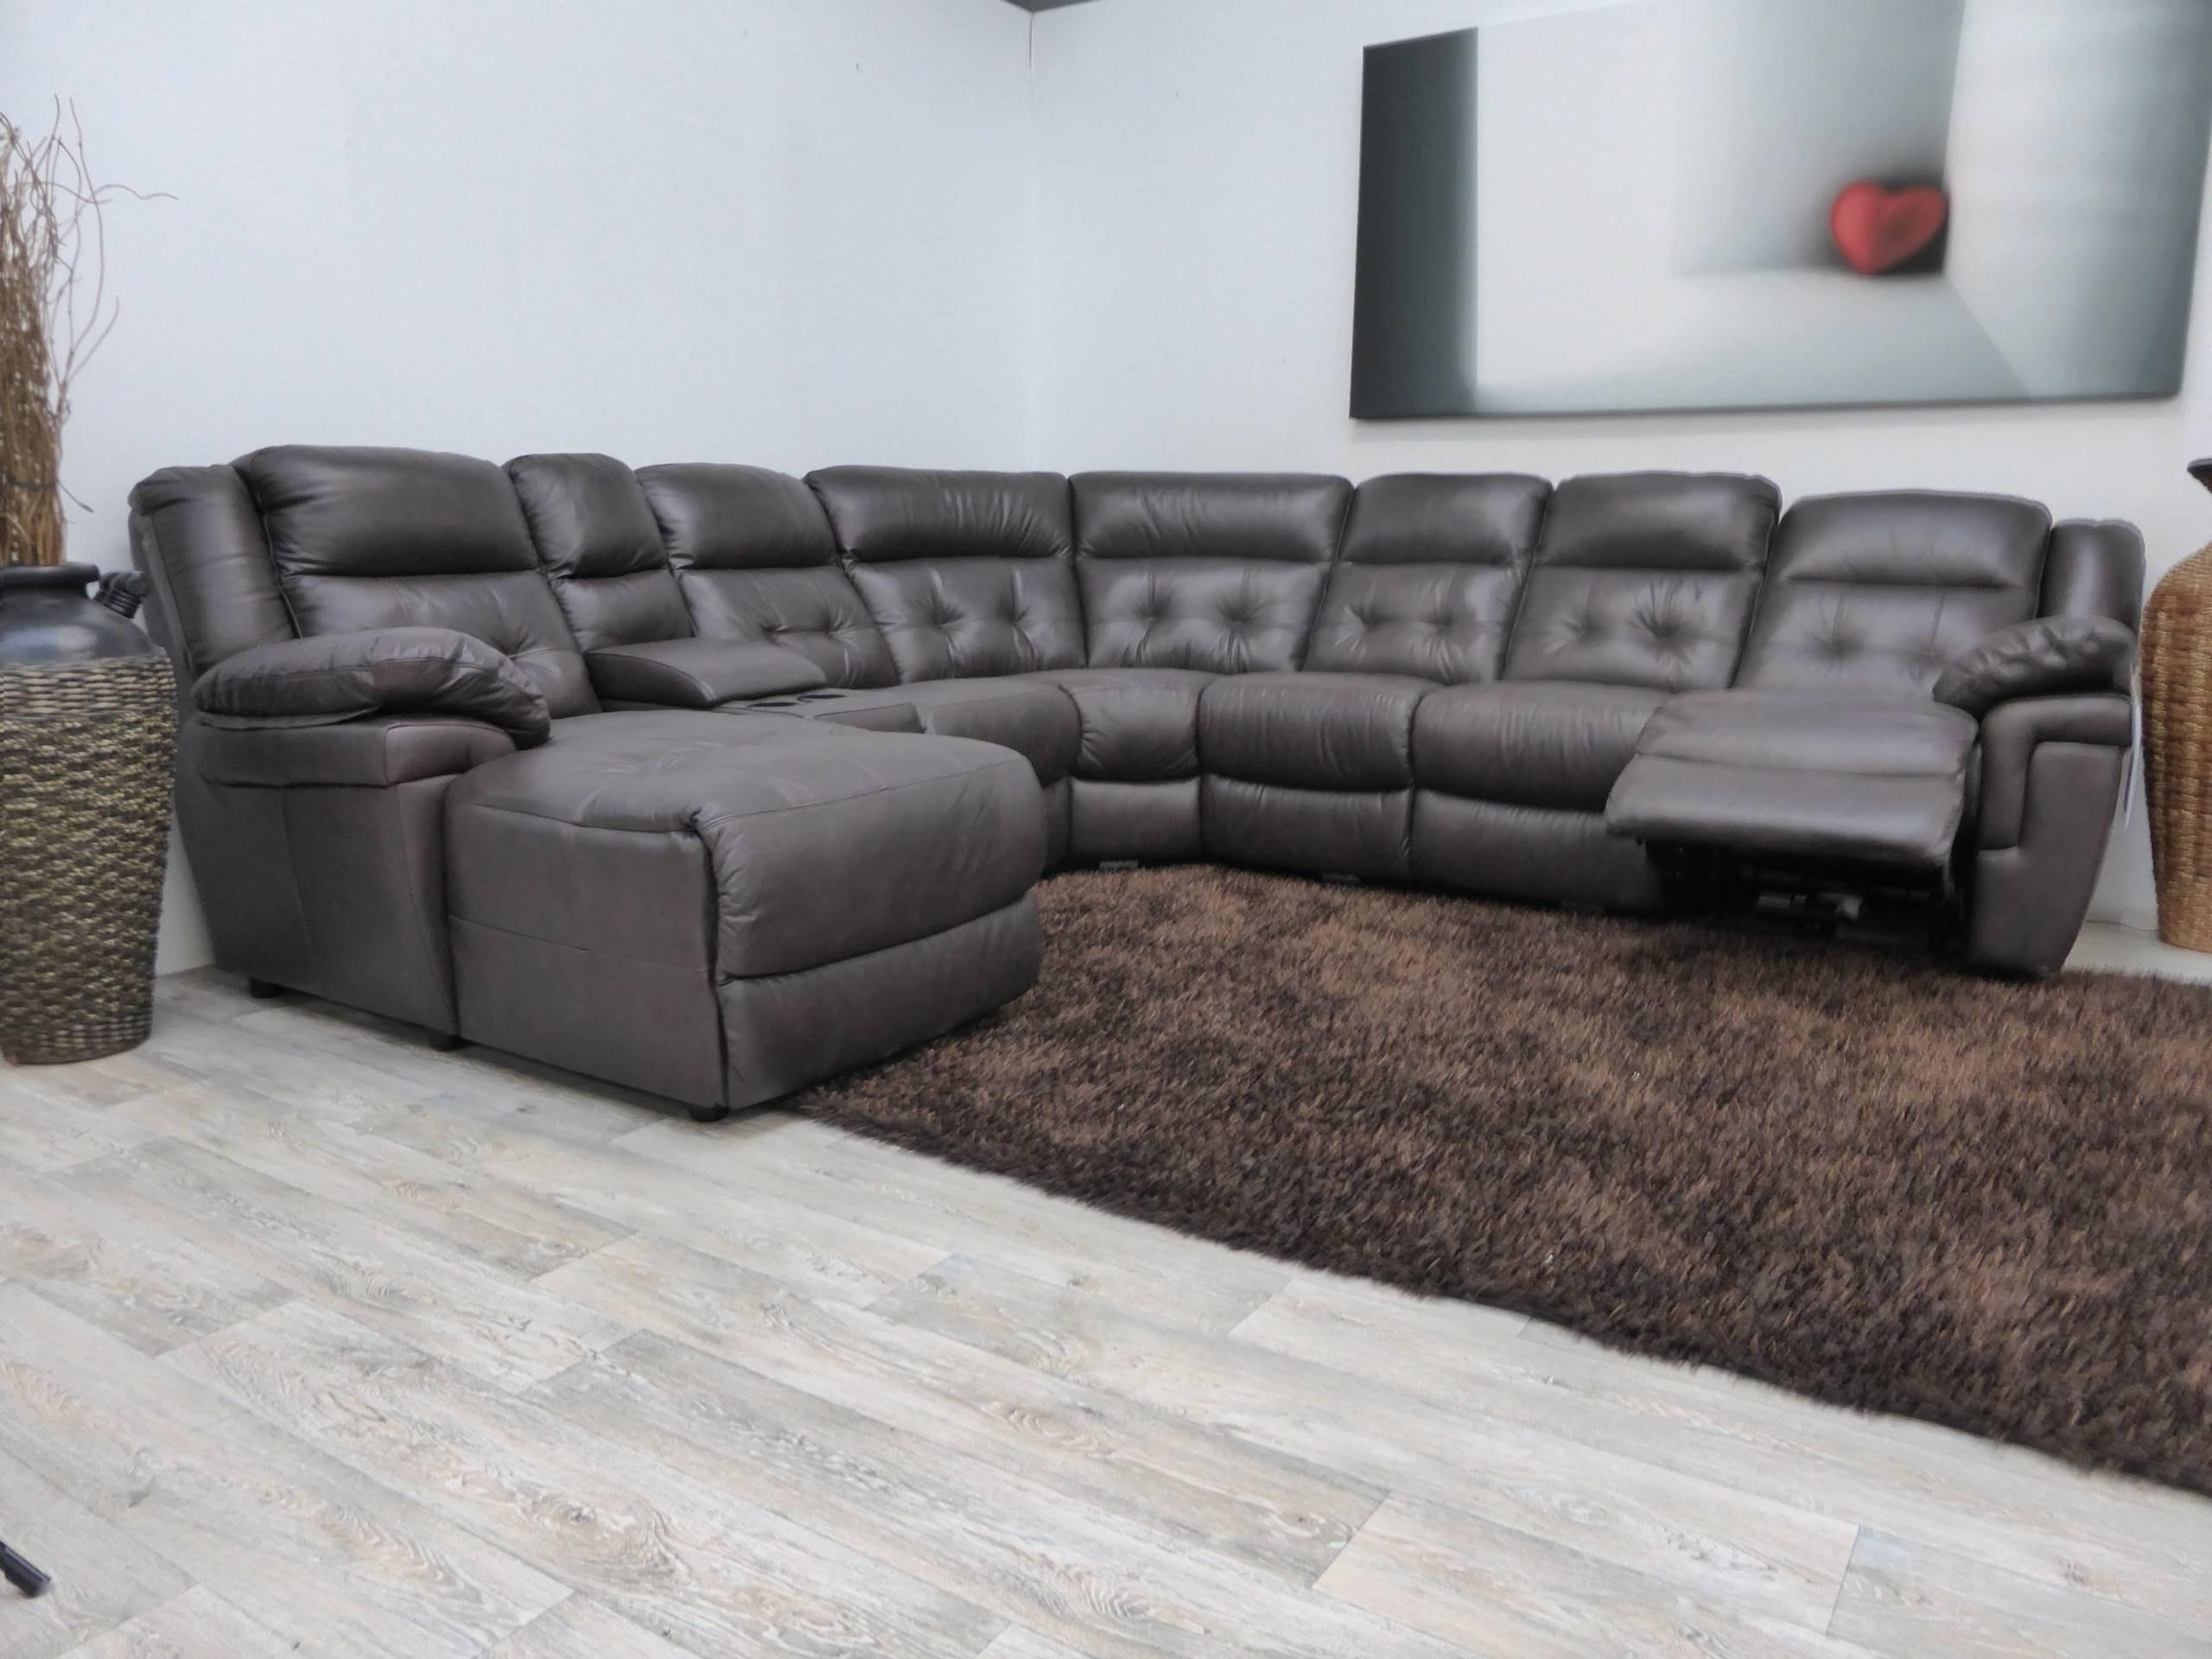 Gilbert Az Sectional Sofas Within Recent Furniture : Craigslist Ma Furnitureowner Luxury Sectional Sofa (Gallery 20 of 20)